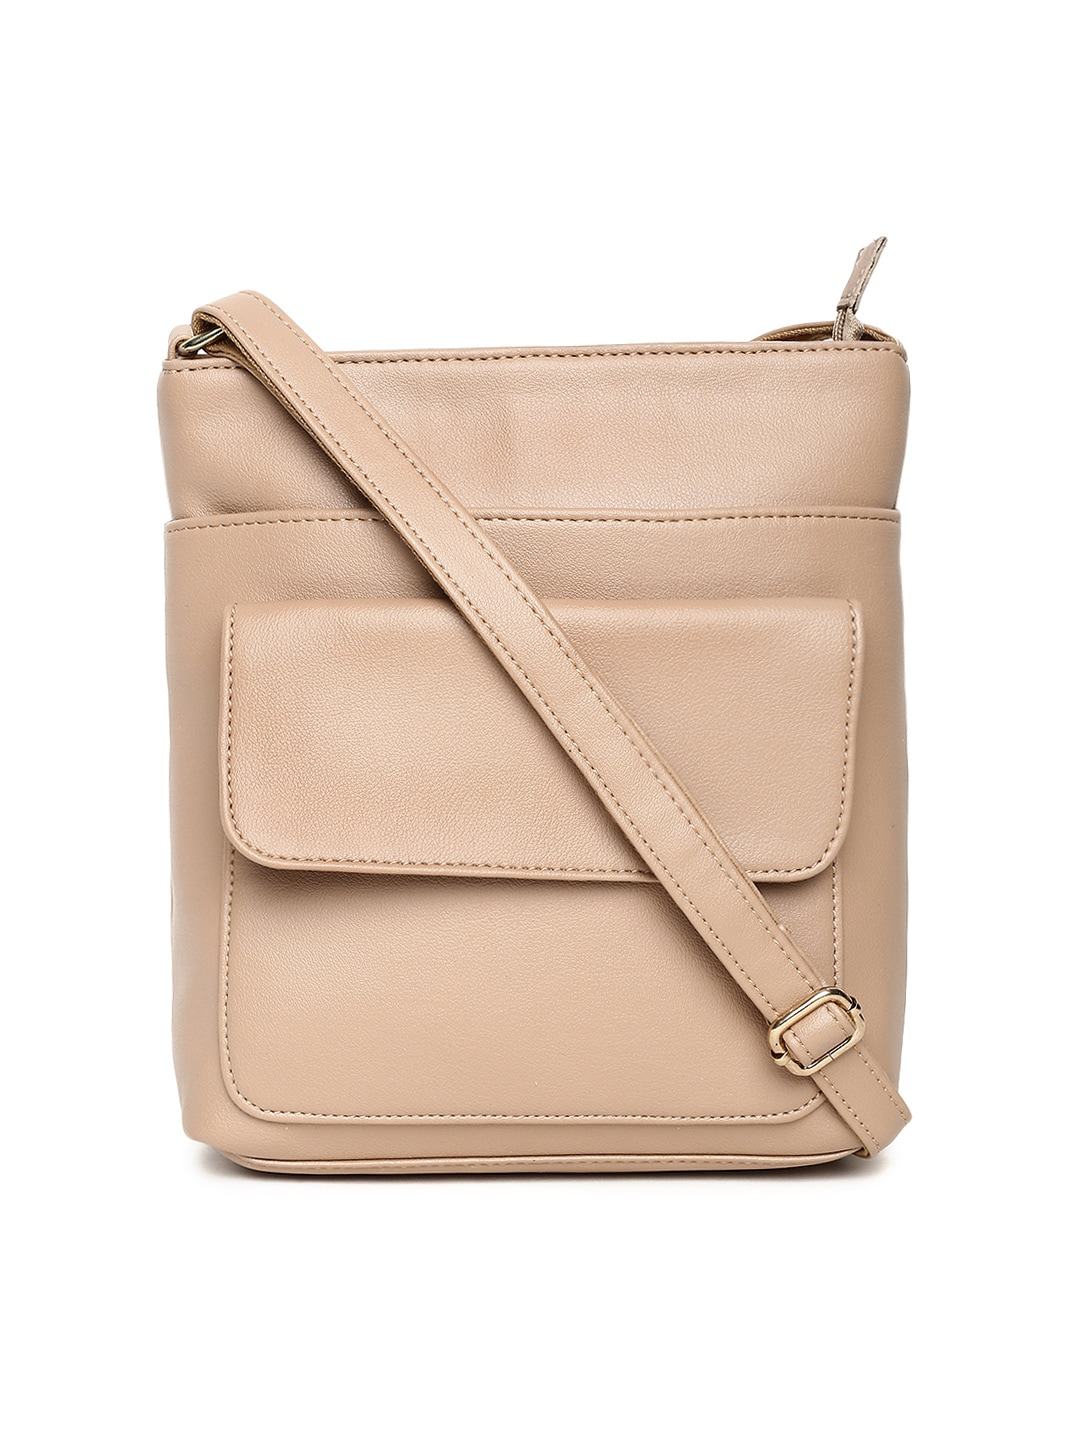 5829271e17e1 Solid Sling Bag. casual sling bags online